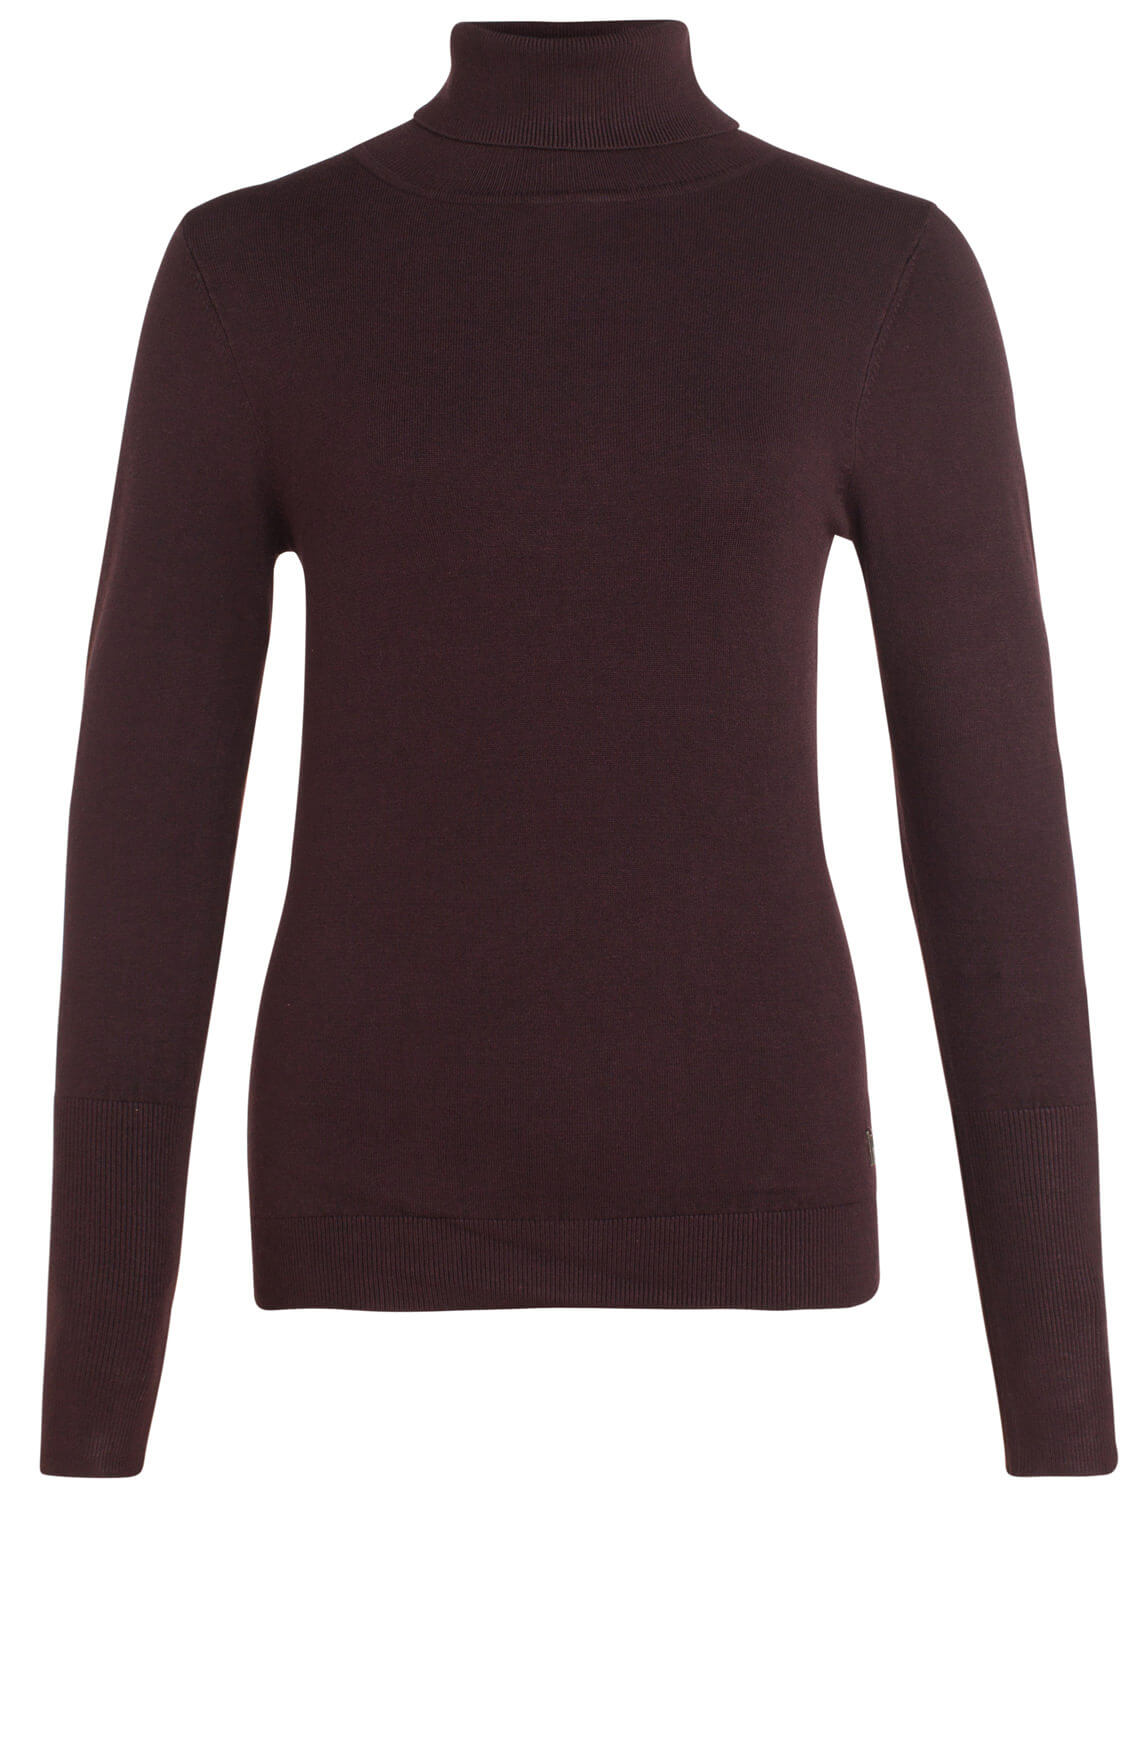 Anna Dames Pullover met col Paars